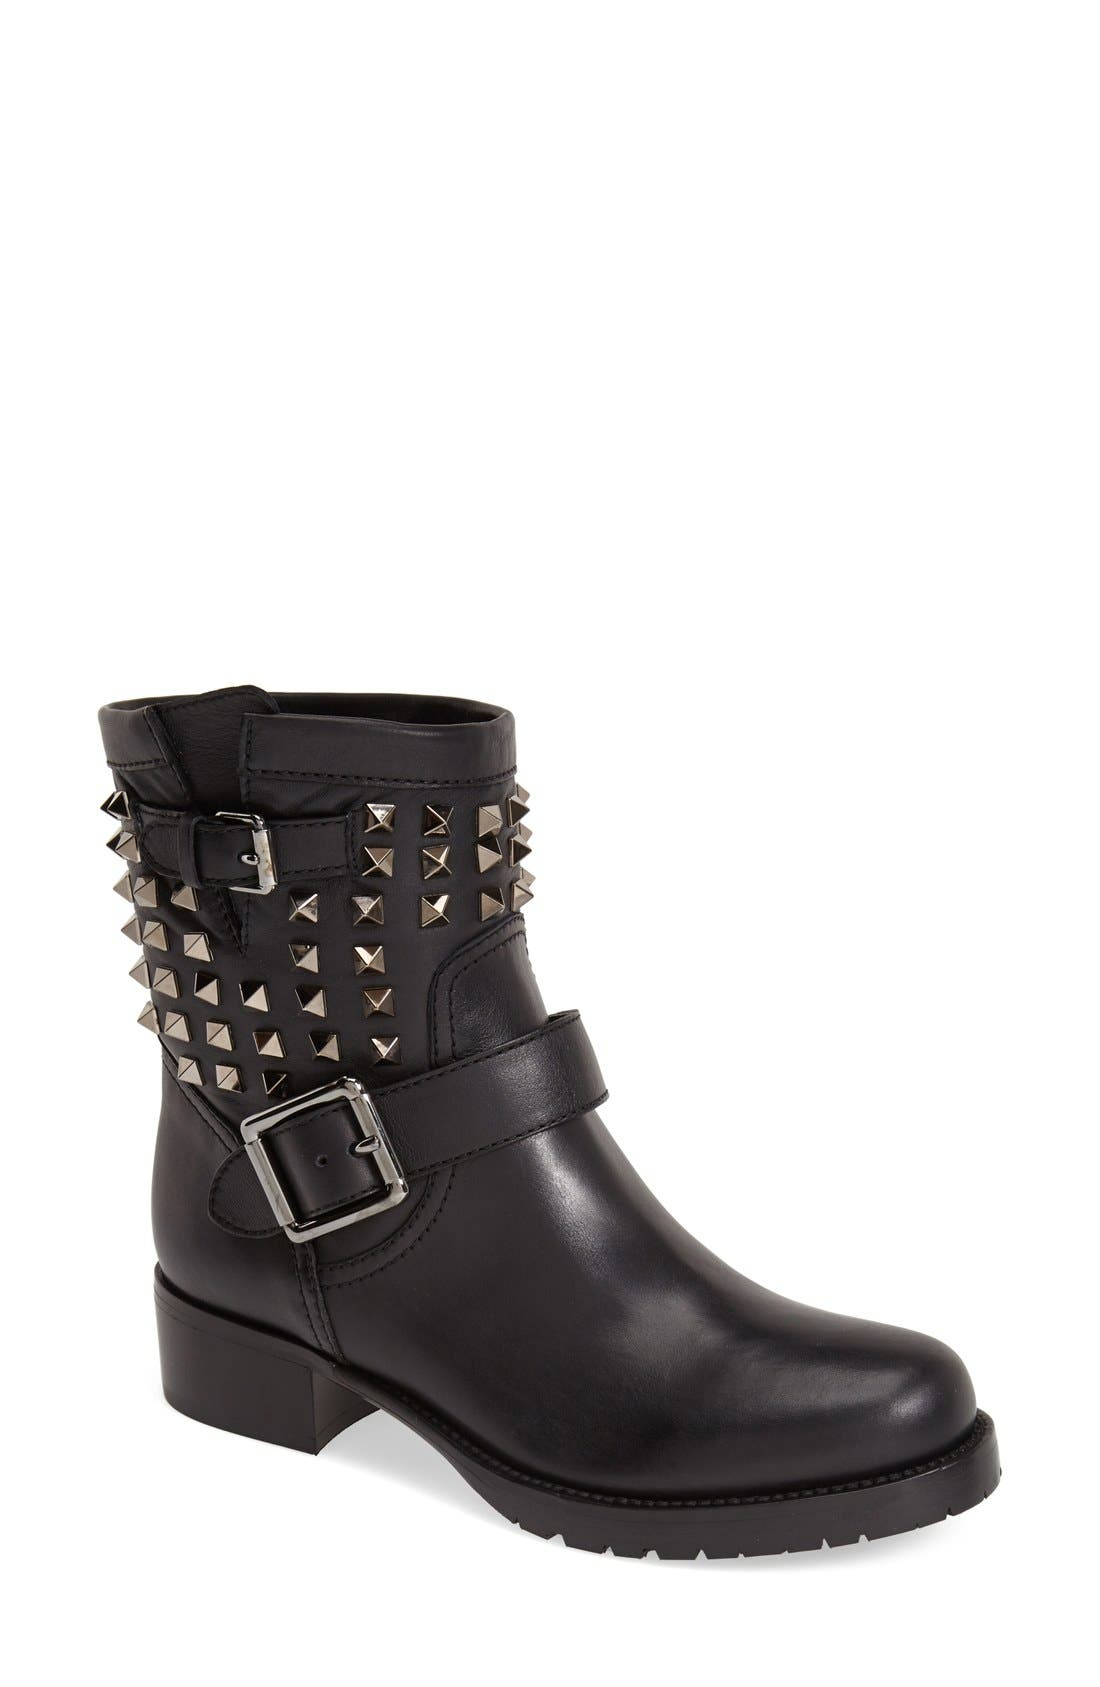 Alternate Image 1 Selected - VALENTINO GARAVANI 'Rockstud' Biker Boot